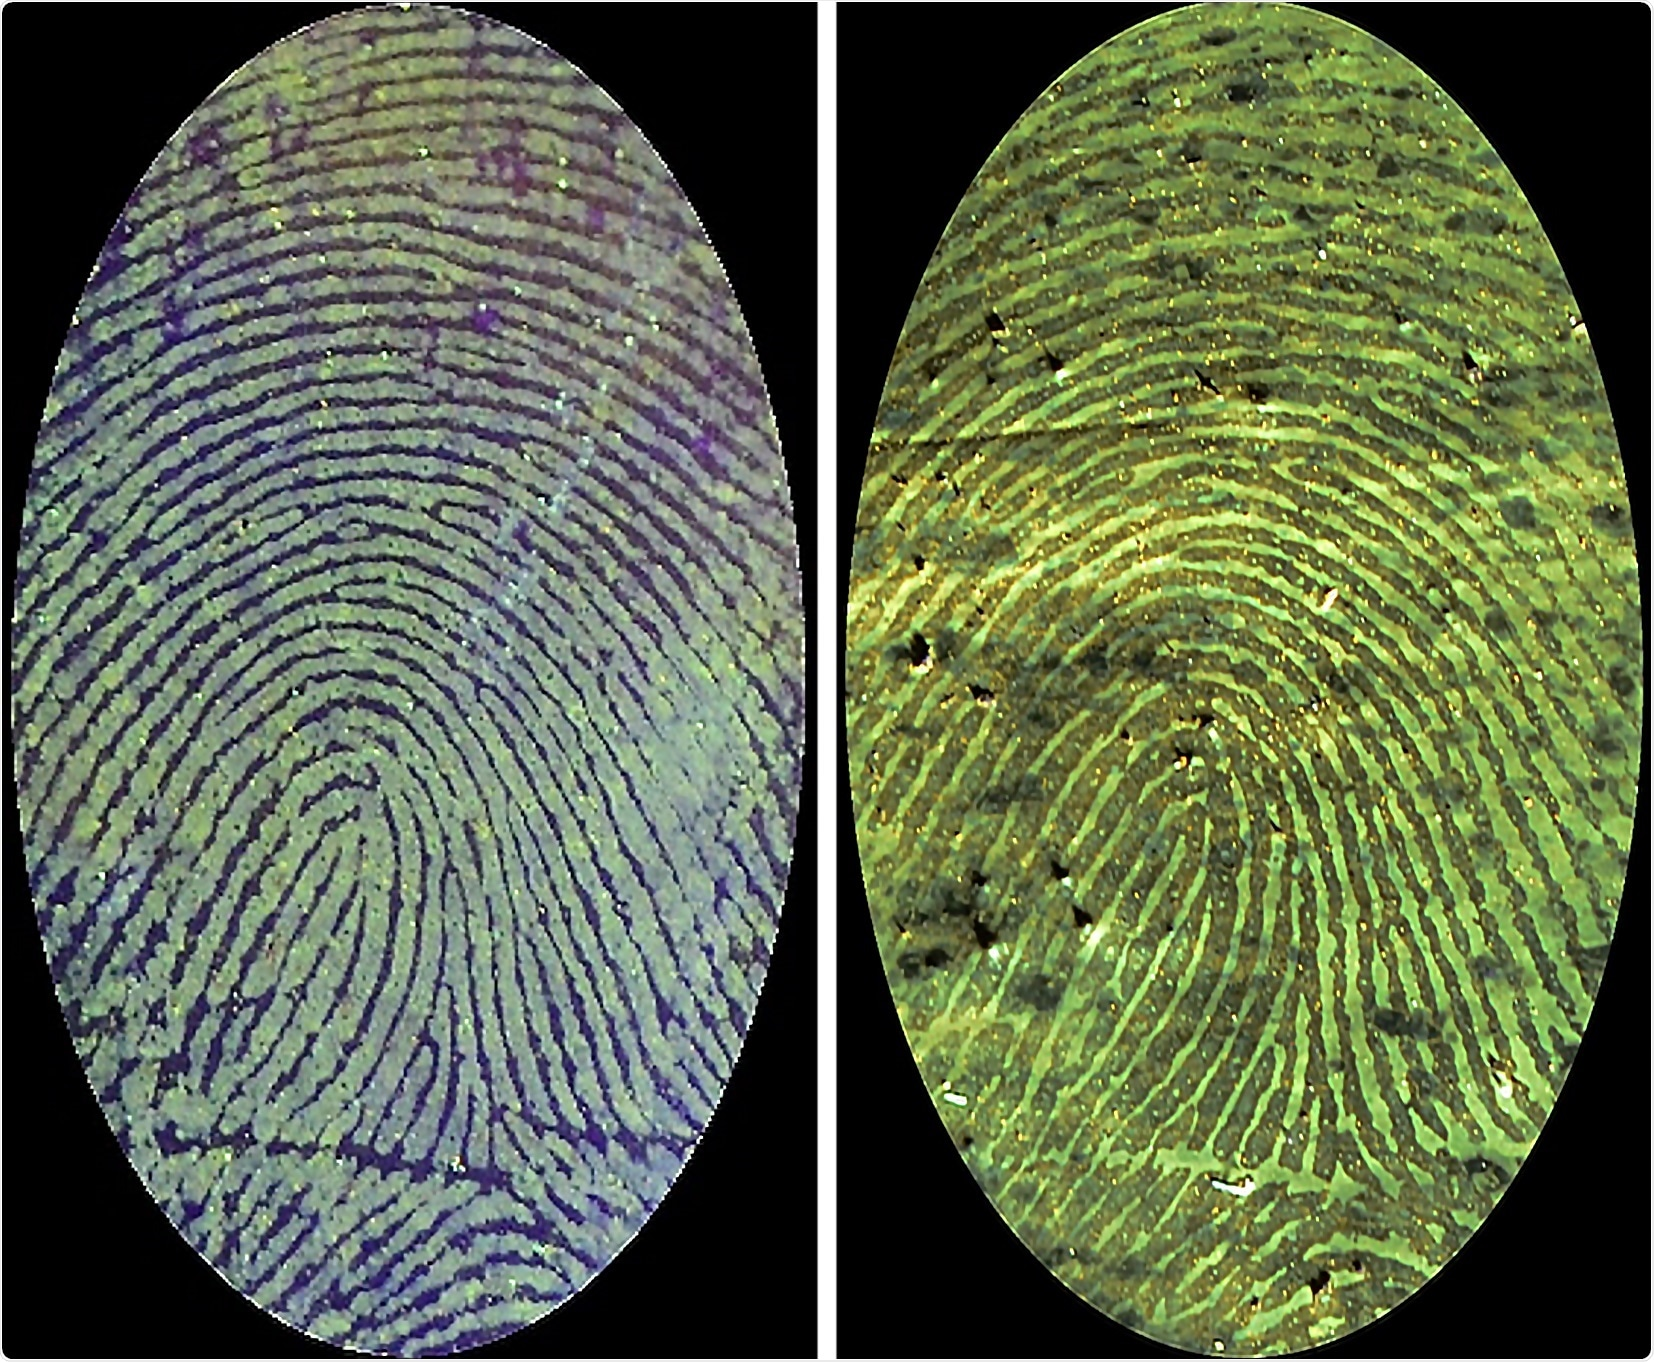 New fluorescent polymer binds to blood in fingerprint to create high-contrast images